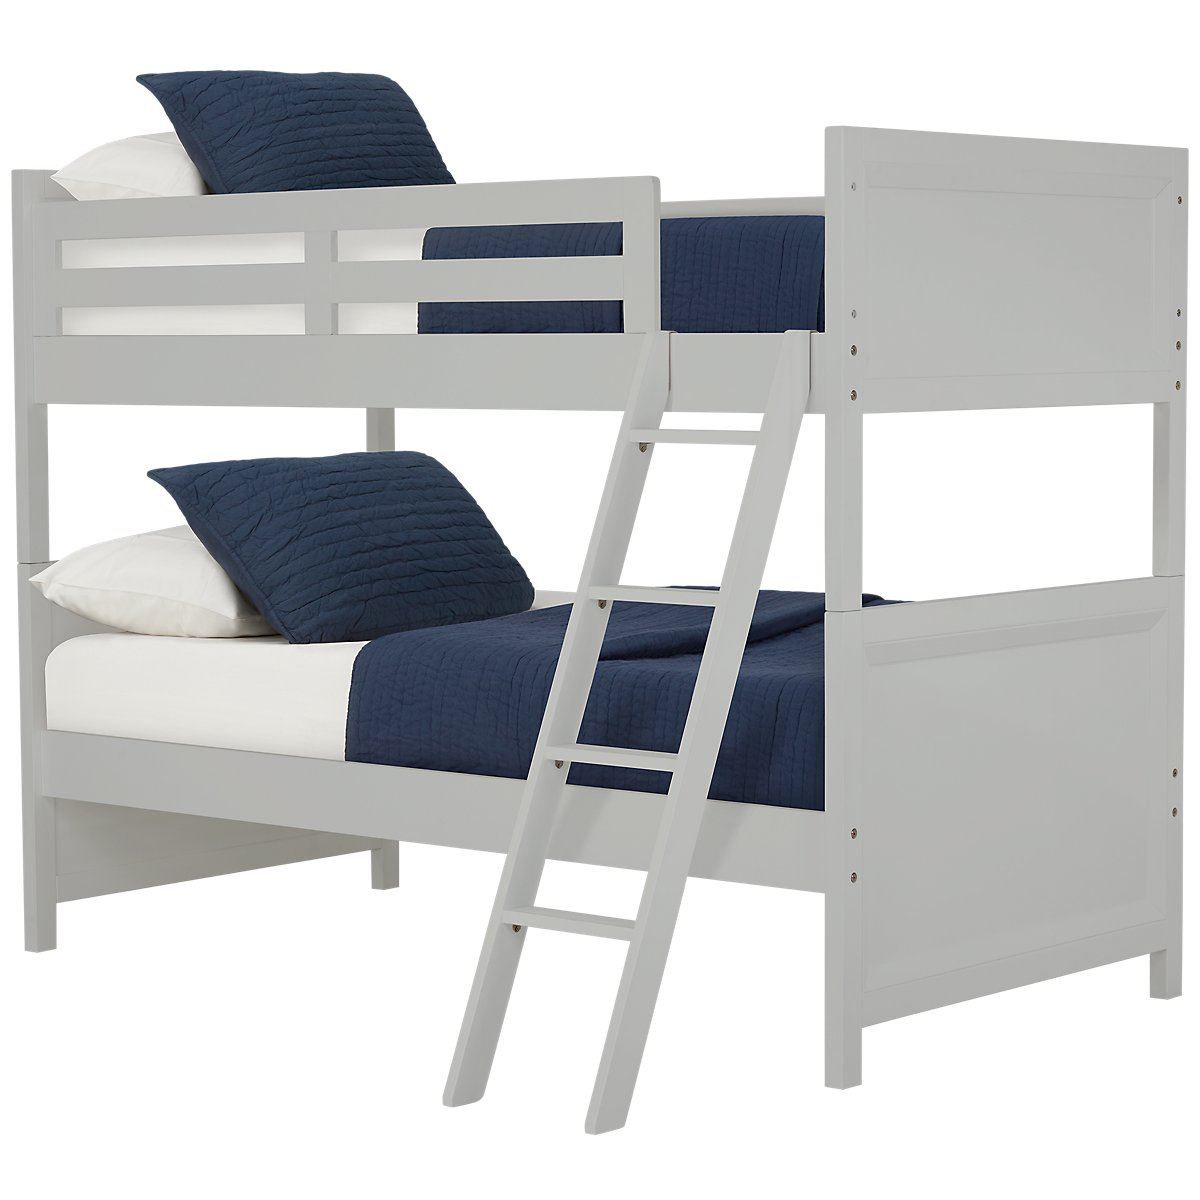 Ryder Gray Bunk Bed